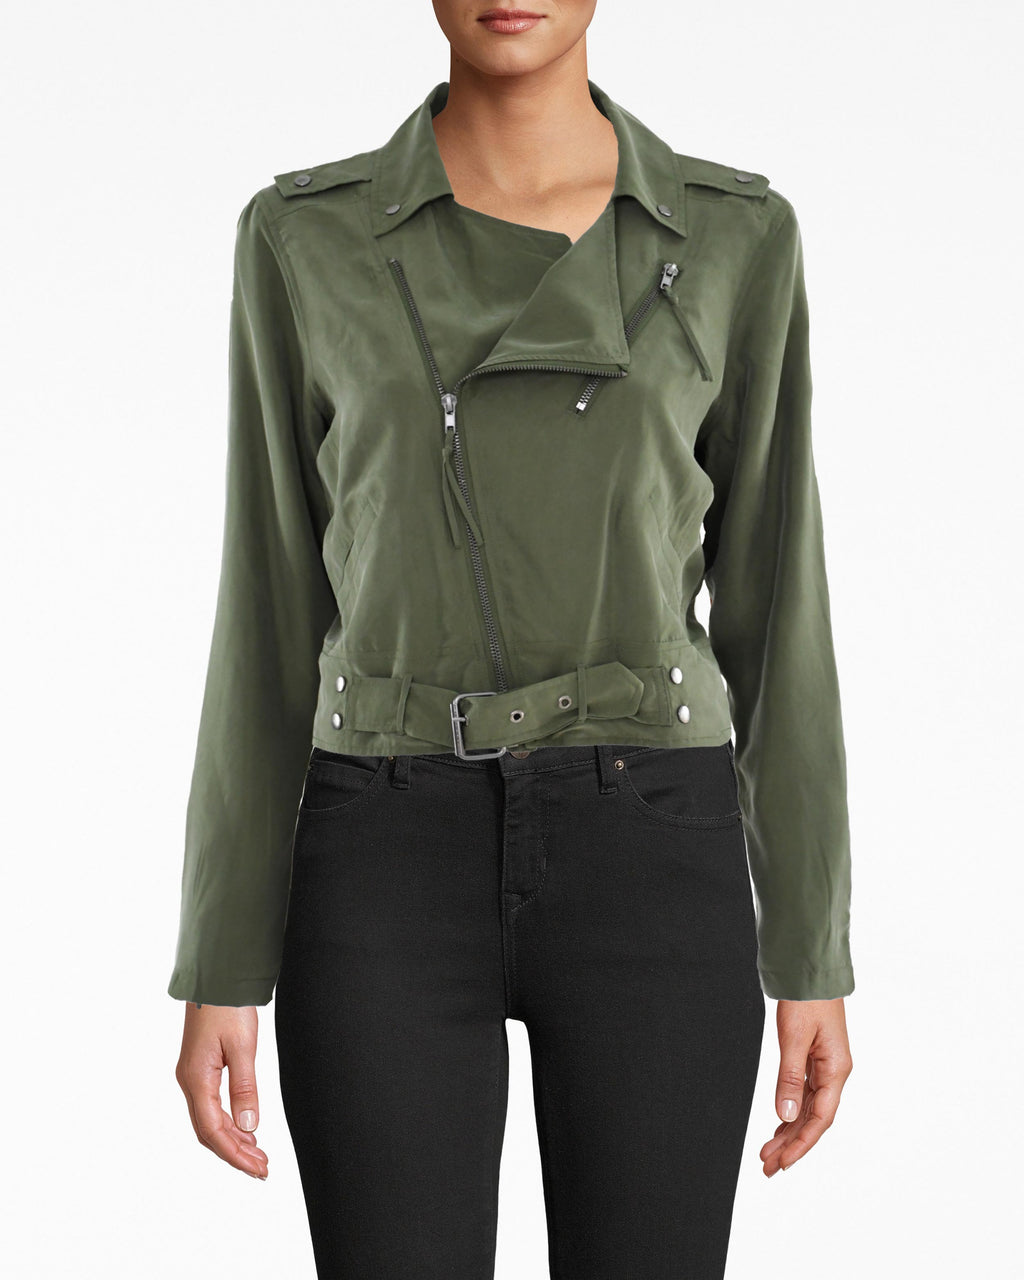 BP10009 - WASHED HABOTAI KALYSIE MOTO JACKET - outerwear - jackets - OUR BEST SELLING KALYSIE SILHOUETTE IS REMADE IN WASHED HABOTAI. THIS CLASSIC MOTO JACKET STYLE HAS TWO FRONT POCKETS WITH ZIPPER DETAILS AND A BELT. Add 1 line break STYLIST TIP: WEAR WITH THE MATCHING CARGO PANTS FOR A STATEMENT LOOK.